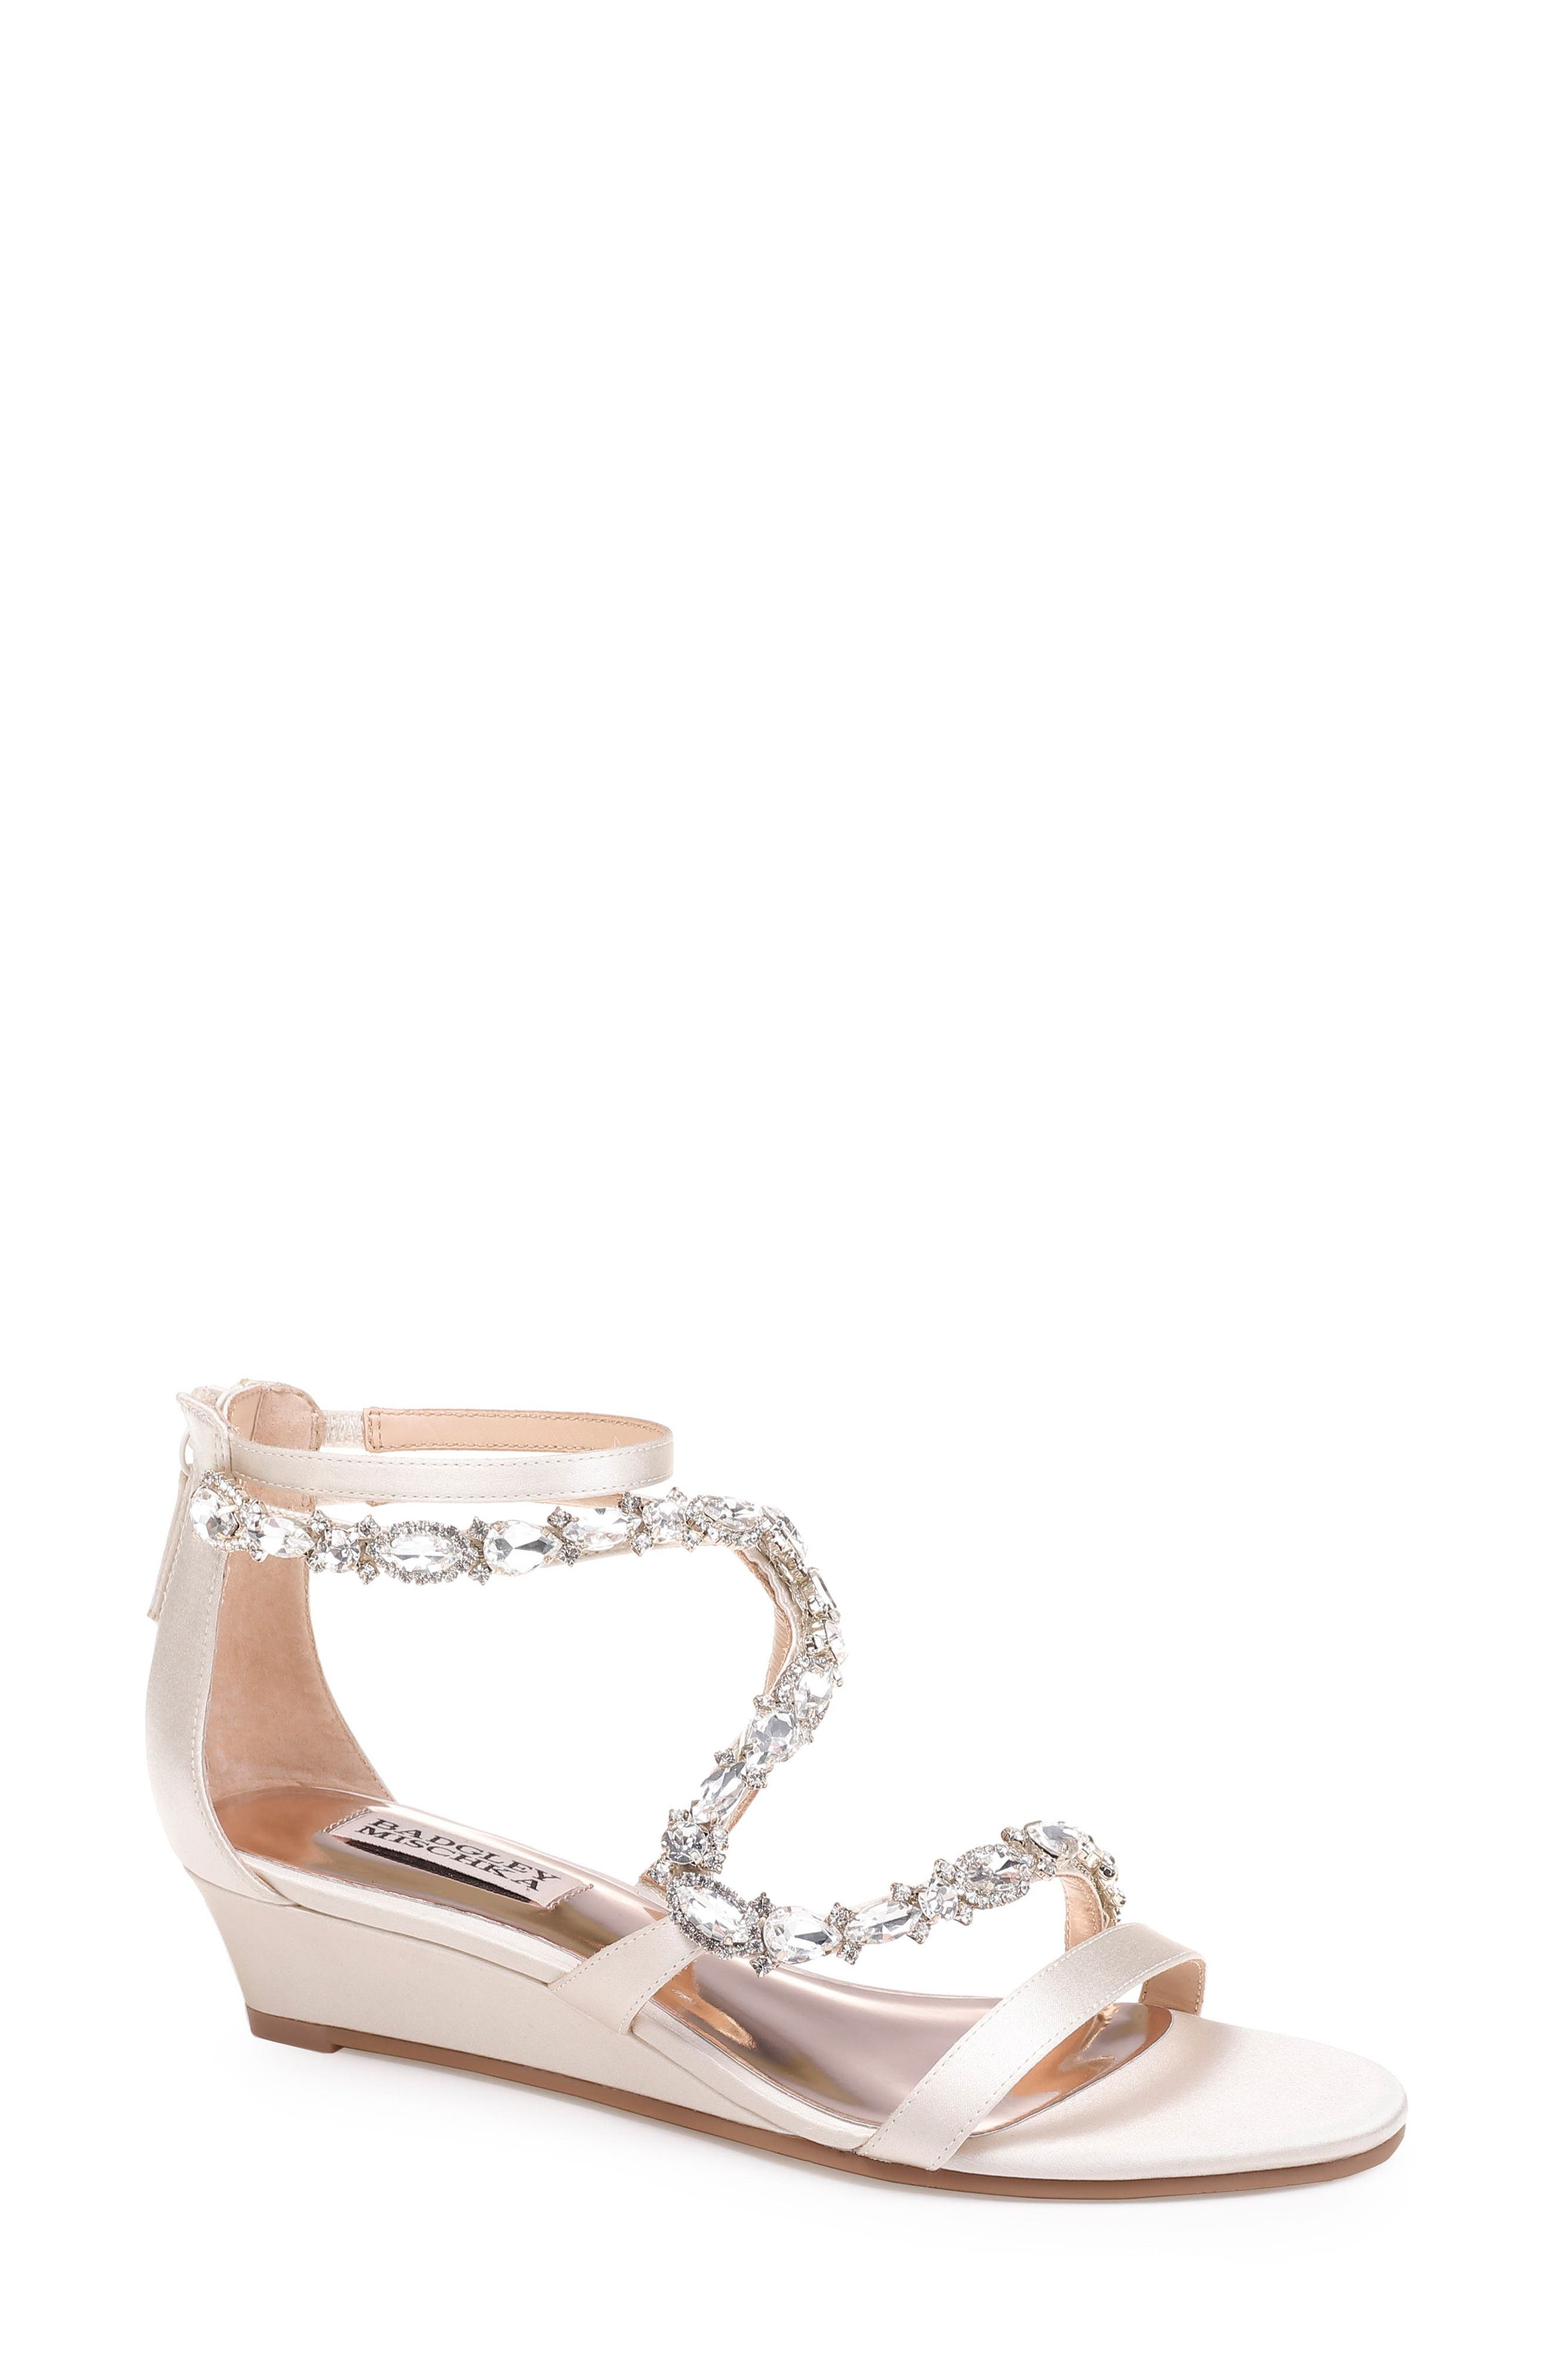 Sierra Strappy Wedge Sandal,                             Main thumbnail 1, color,                             IVORY SATIN